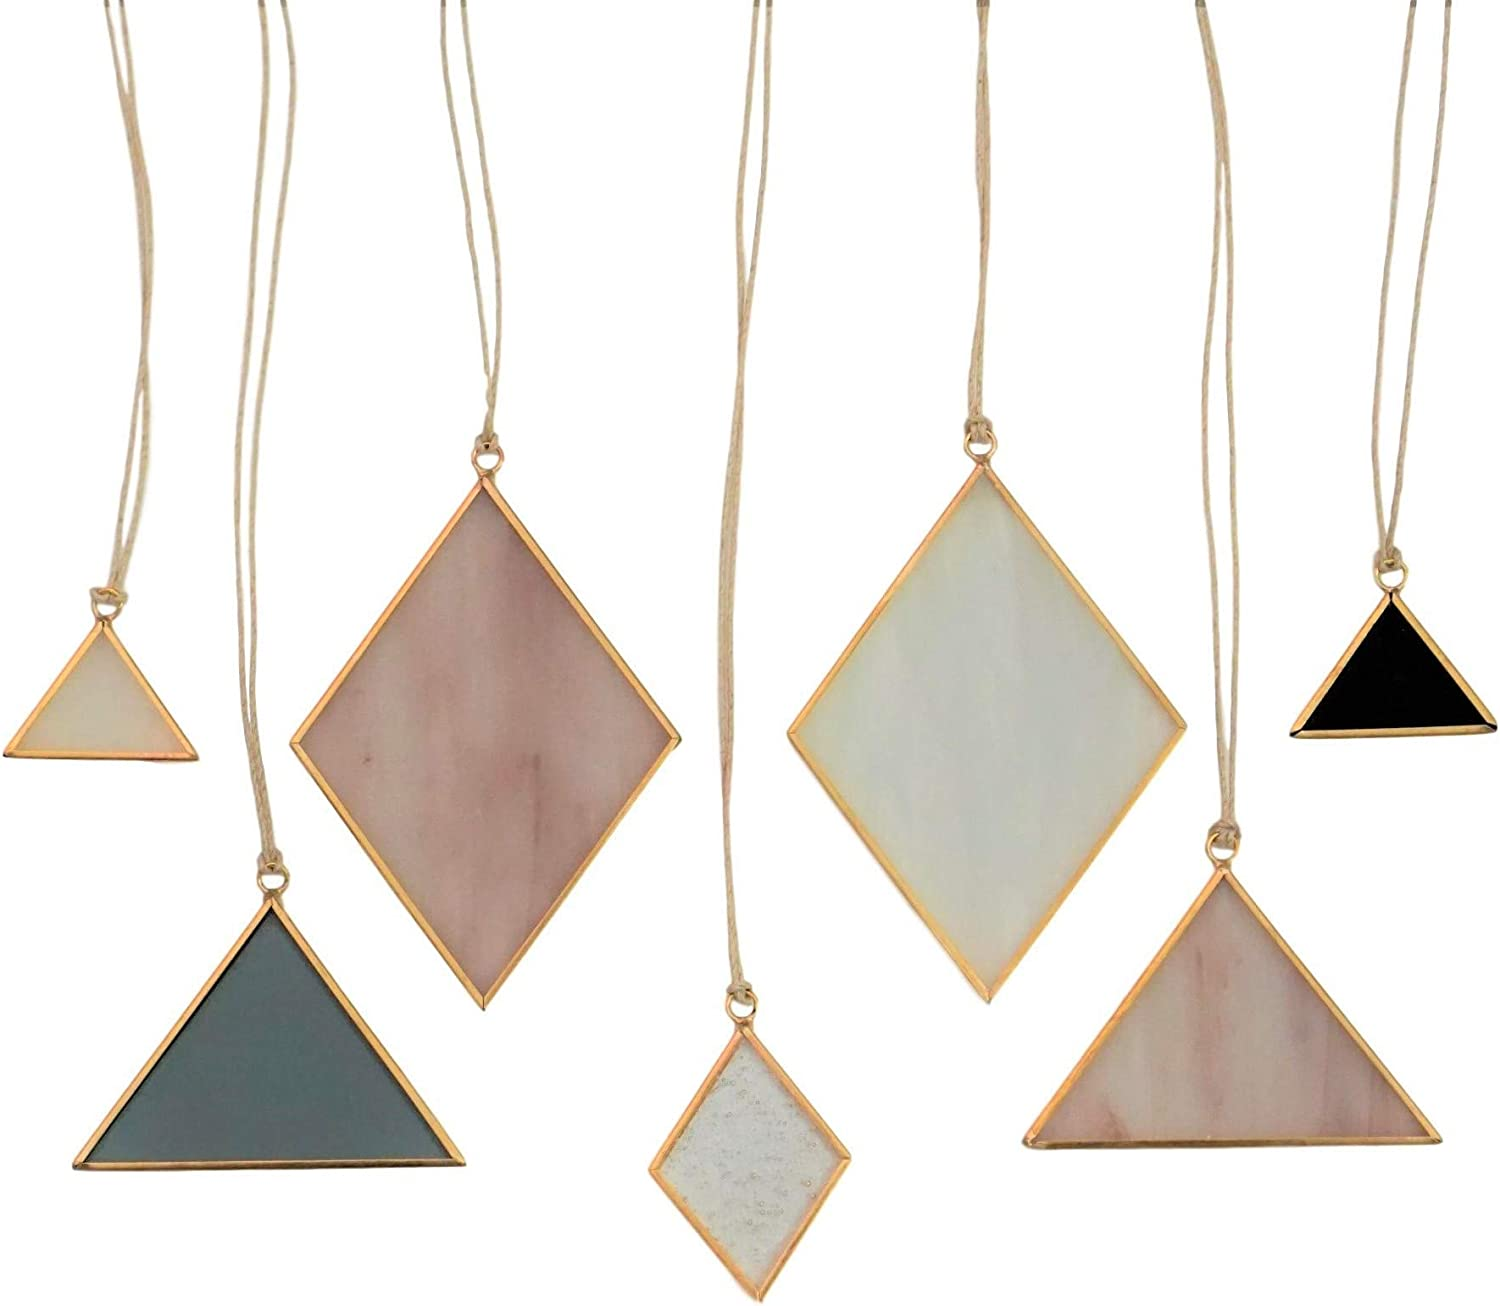 Sensory4u Stained Glass Suncatchers Window Hanging Wall Art Element Earth Tones Modern Design - 7 Piece Set